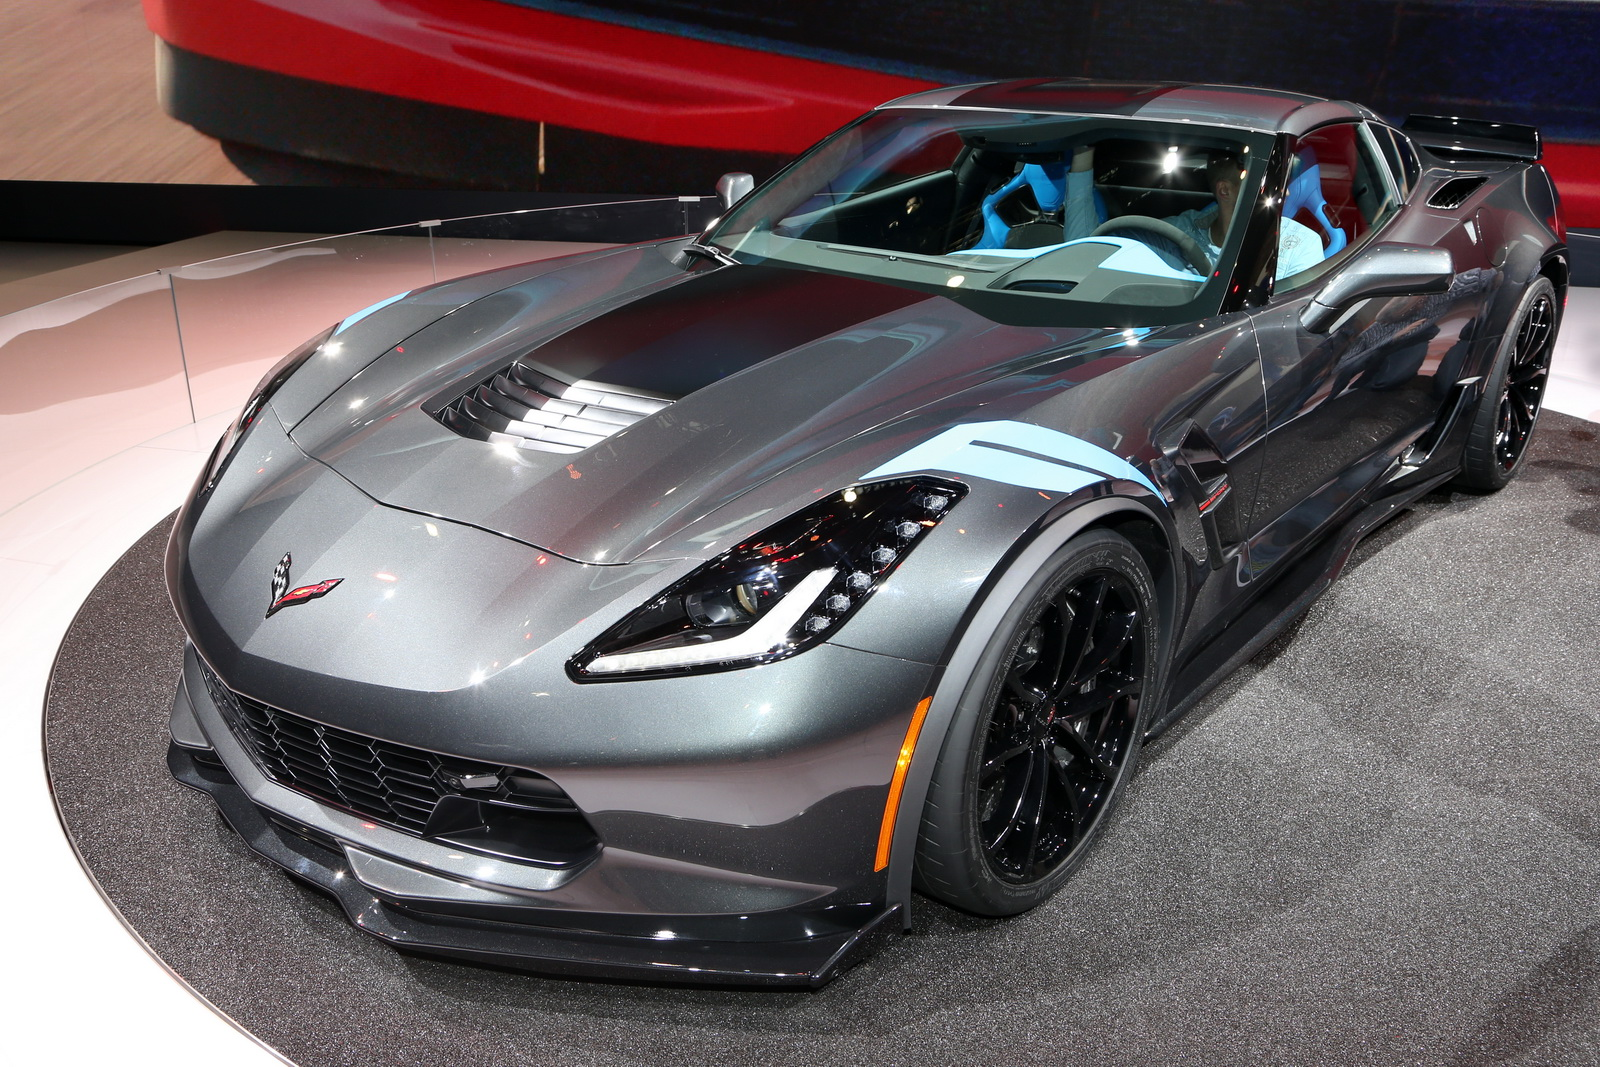 new 2017 corvette grand sport brings zo6 goodies to stingray for 66 445 carscoops. Black Bedroom Furniture Sets. Home Design Ideas